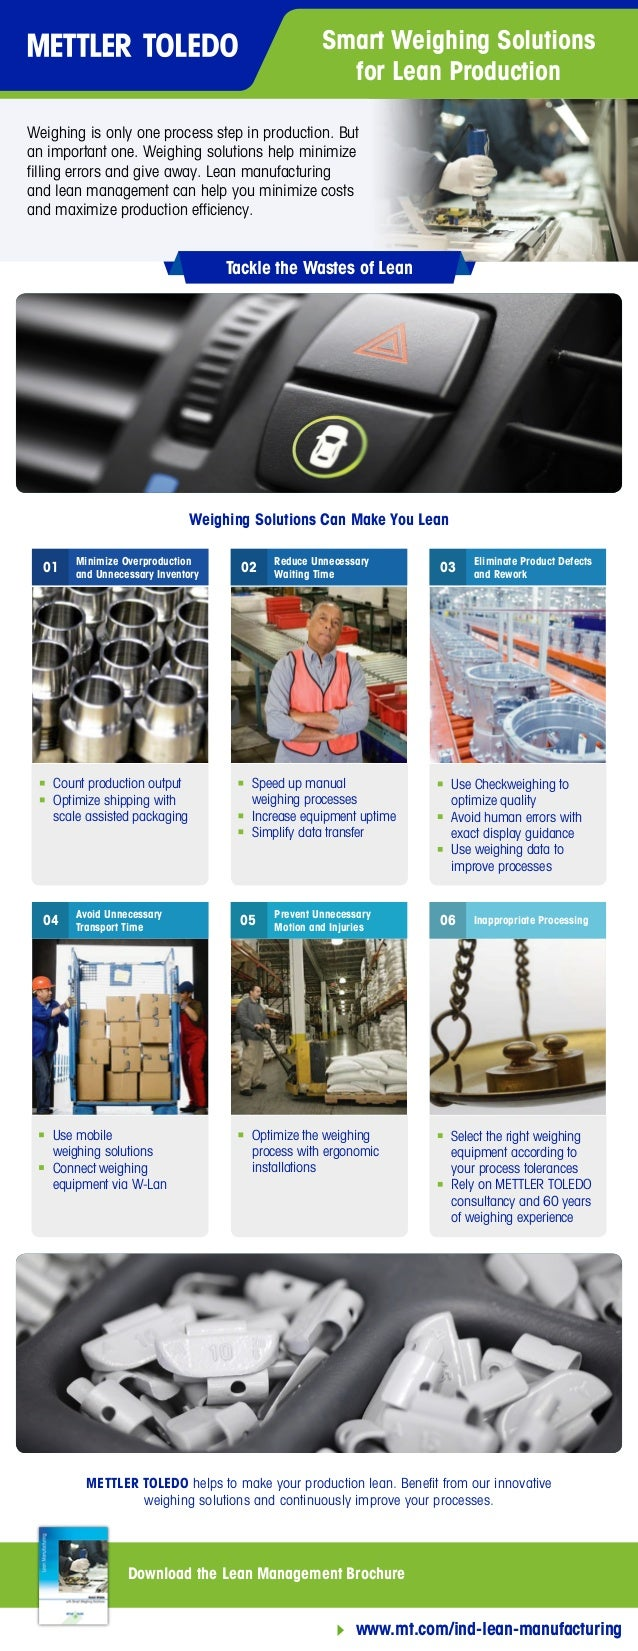 Smart Weighing Solutions for Lean Production Tackle the Wastes of Lean Download the Lean Management Brochure www.mt.com/in...